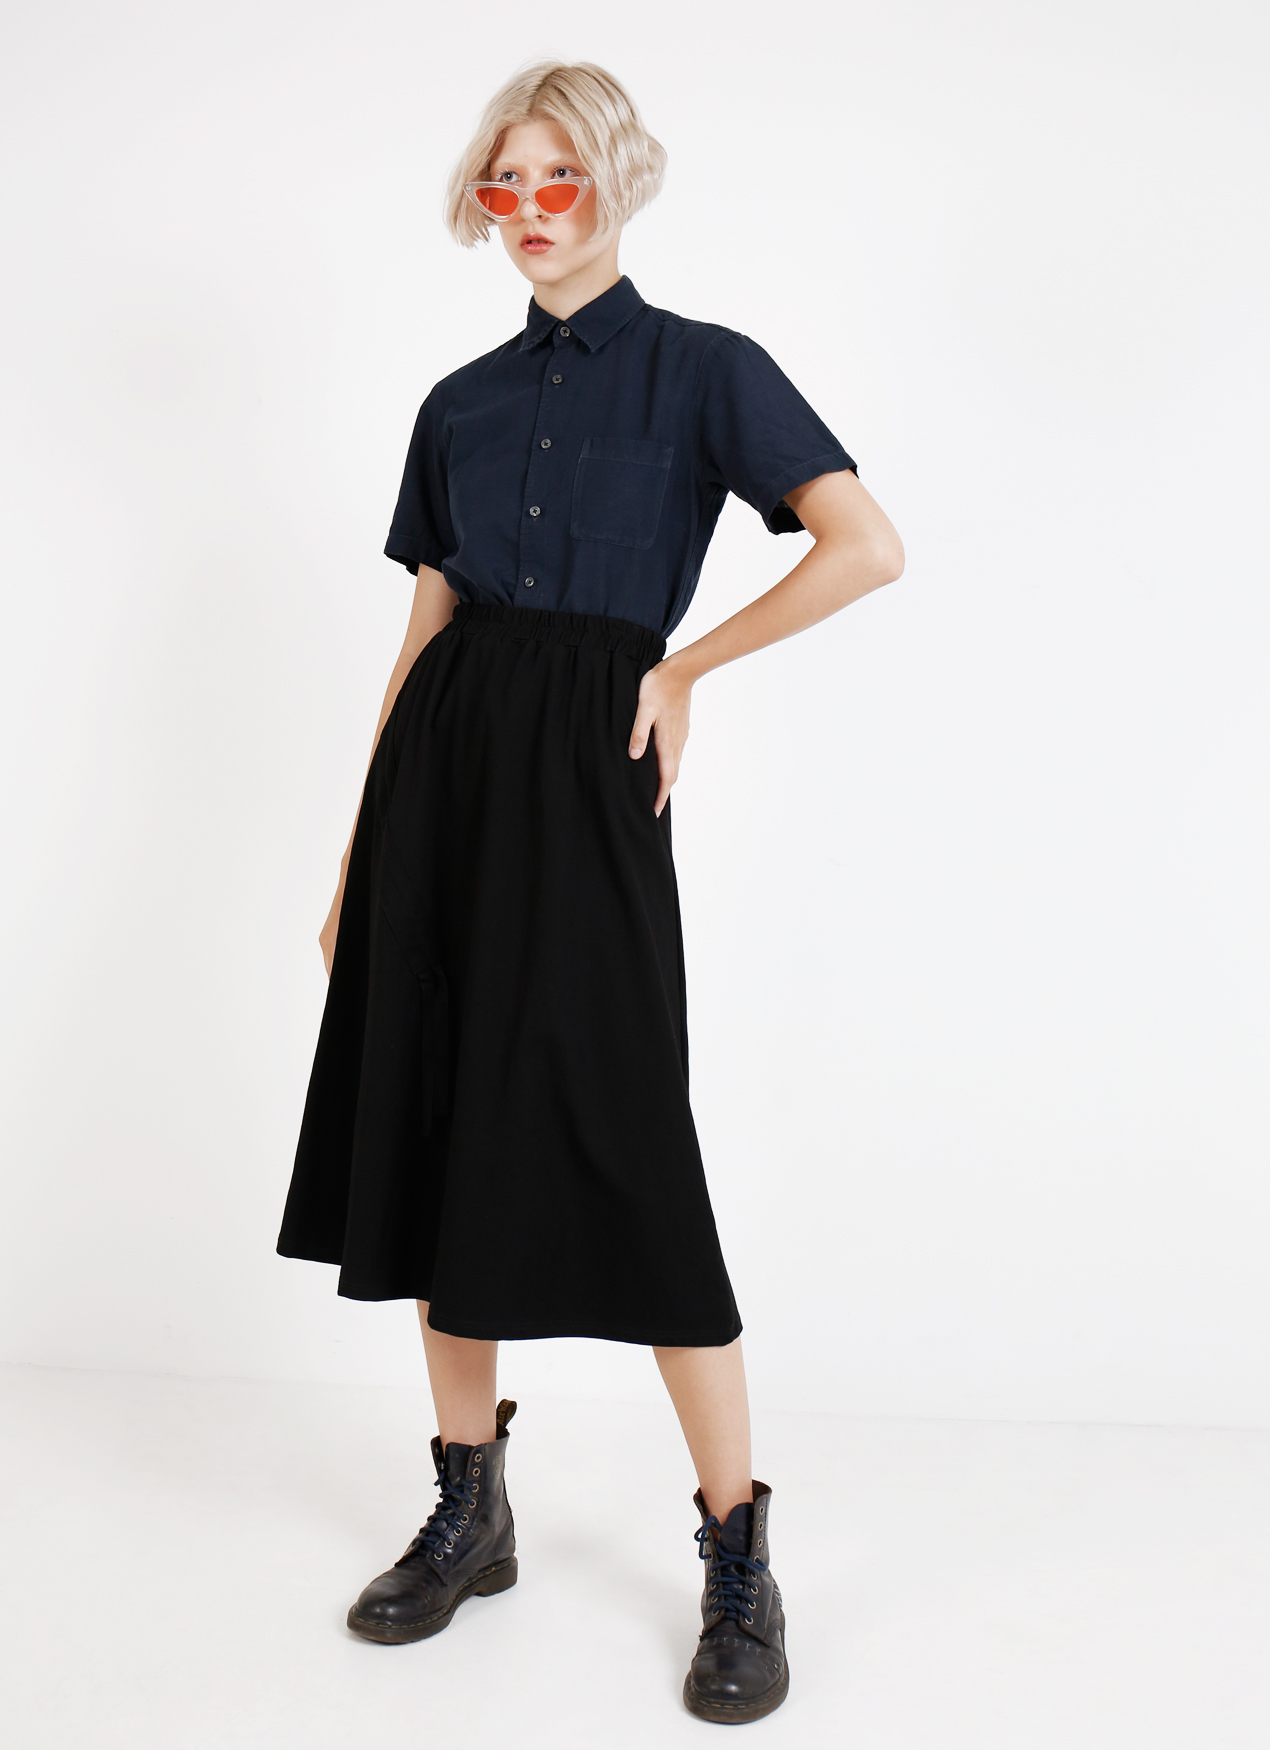 BOWN Claire Skirt - Black